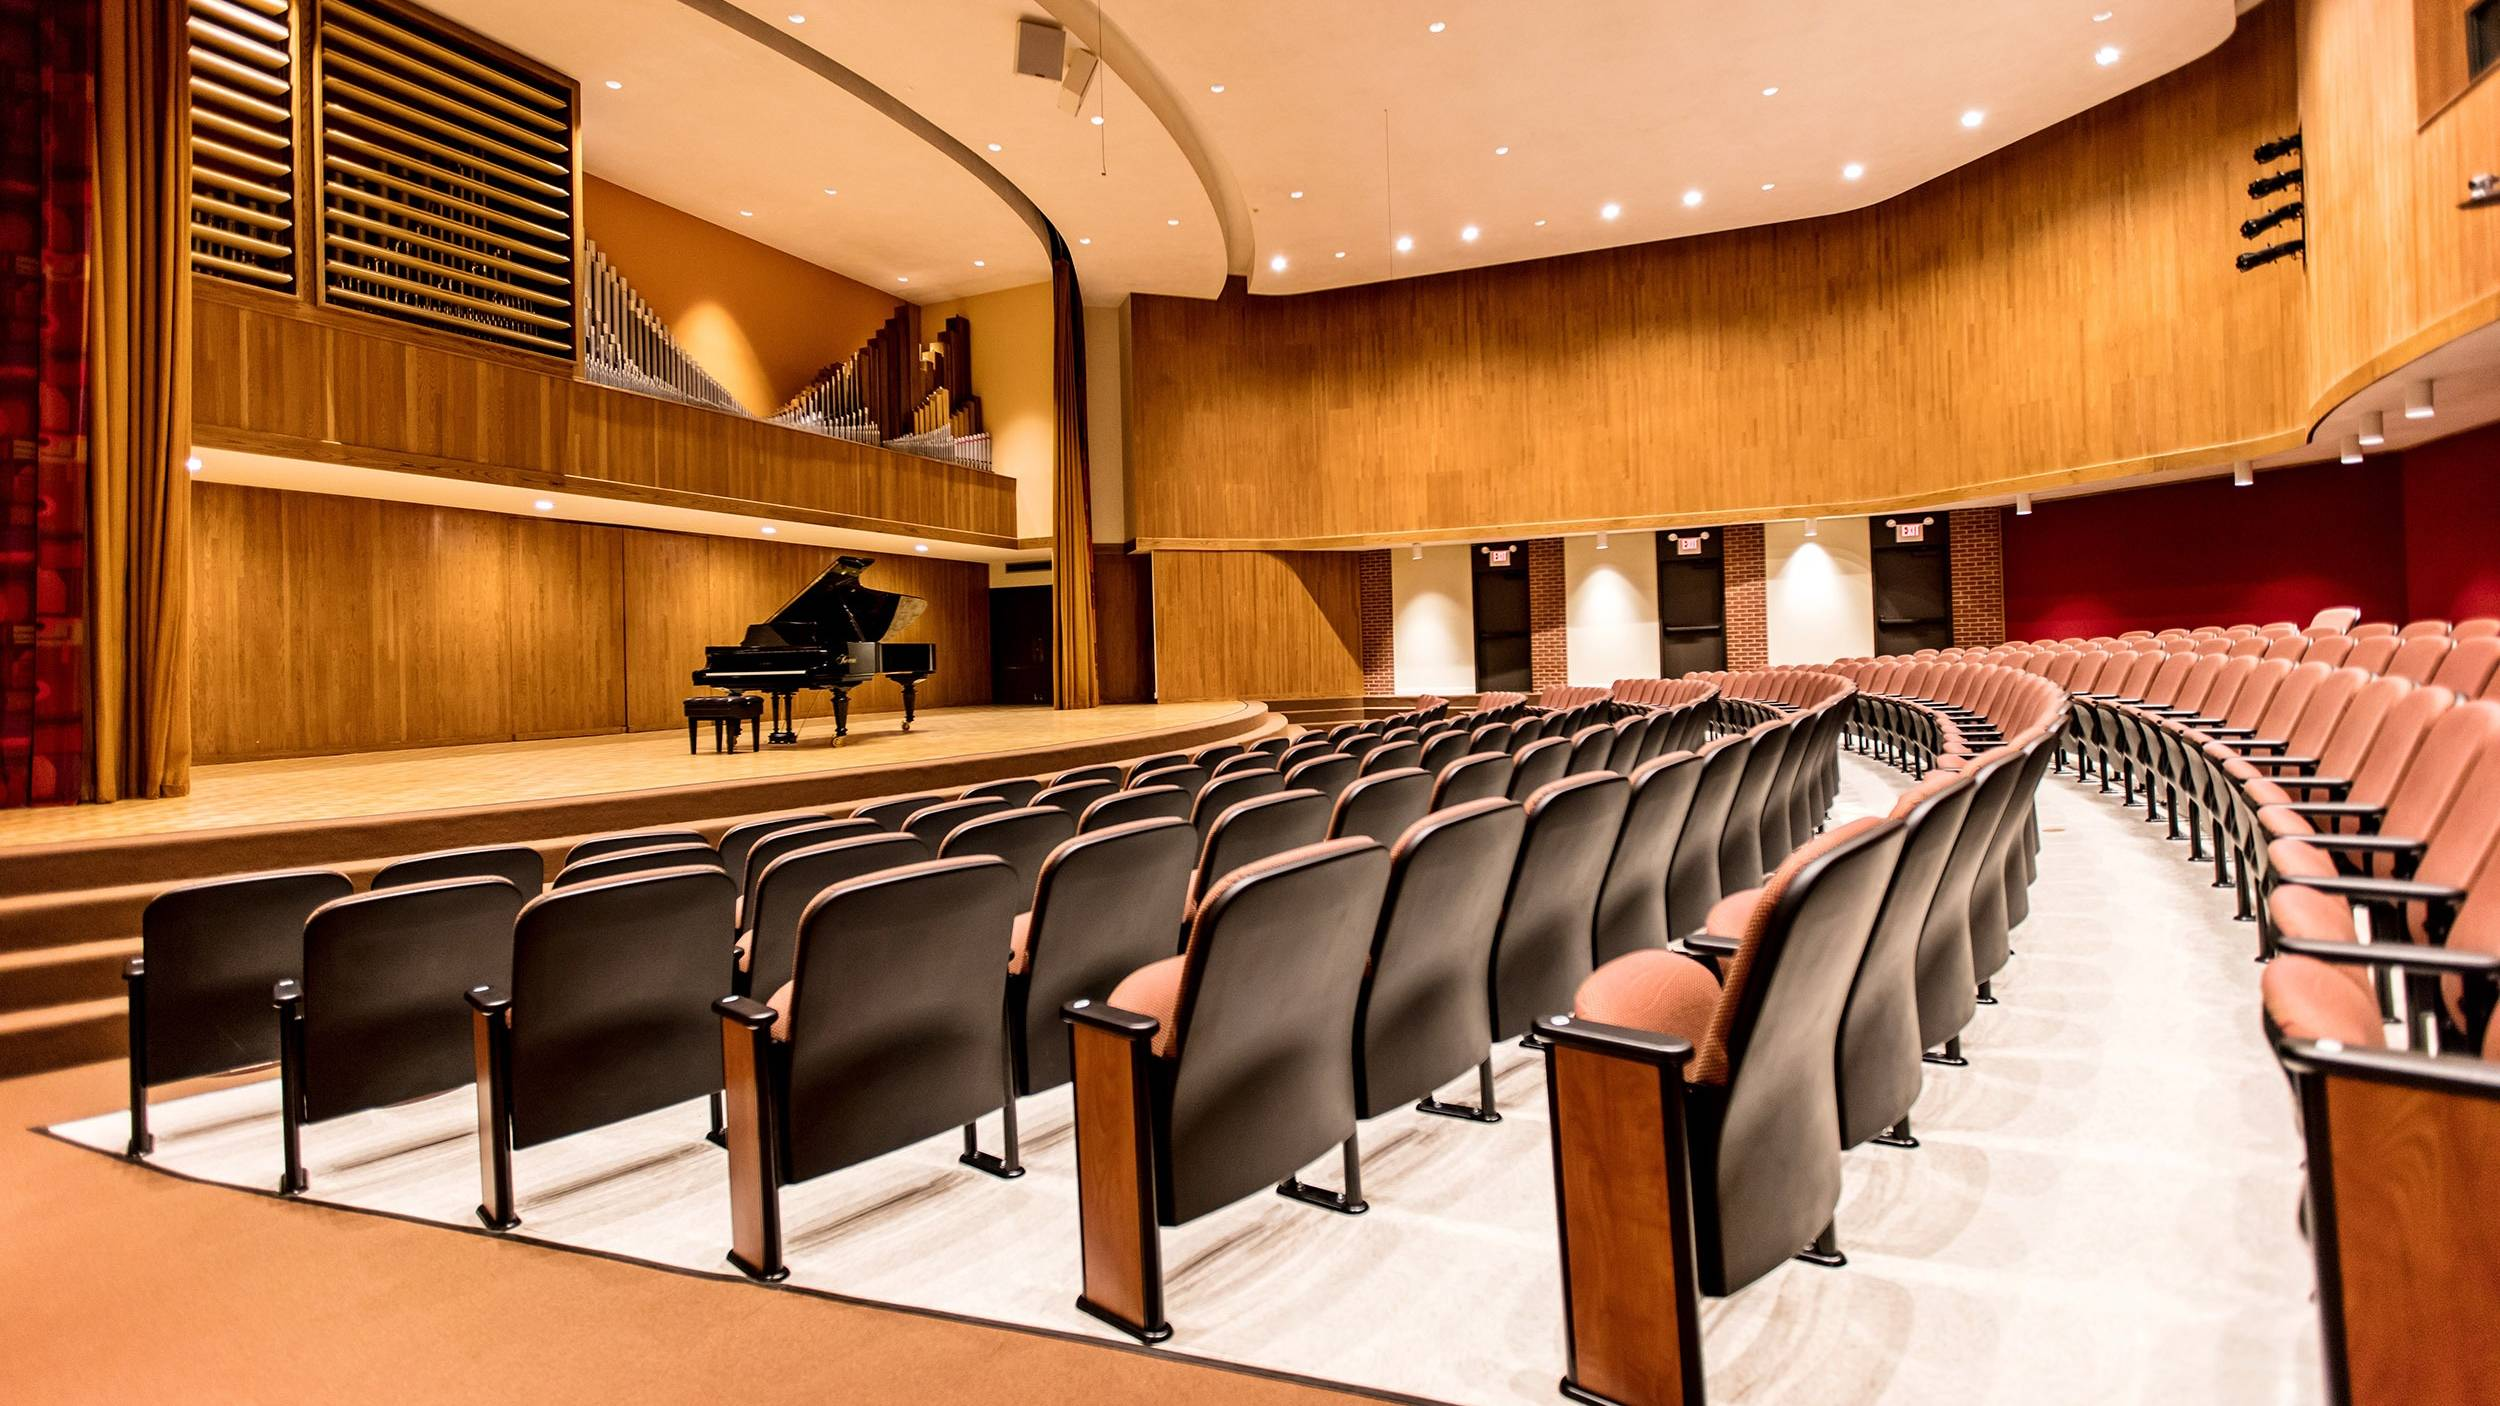 McBeth Recital Hall